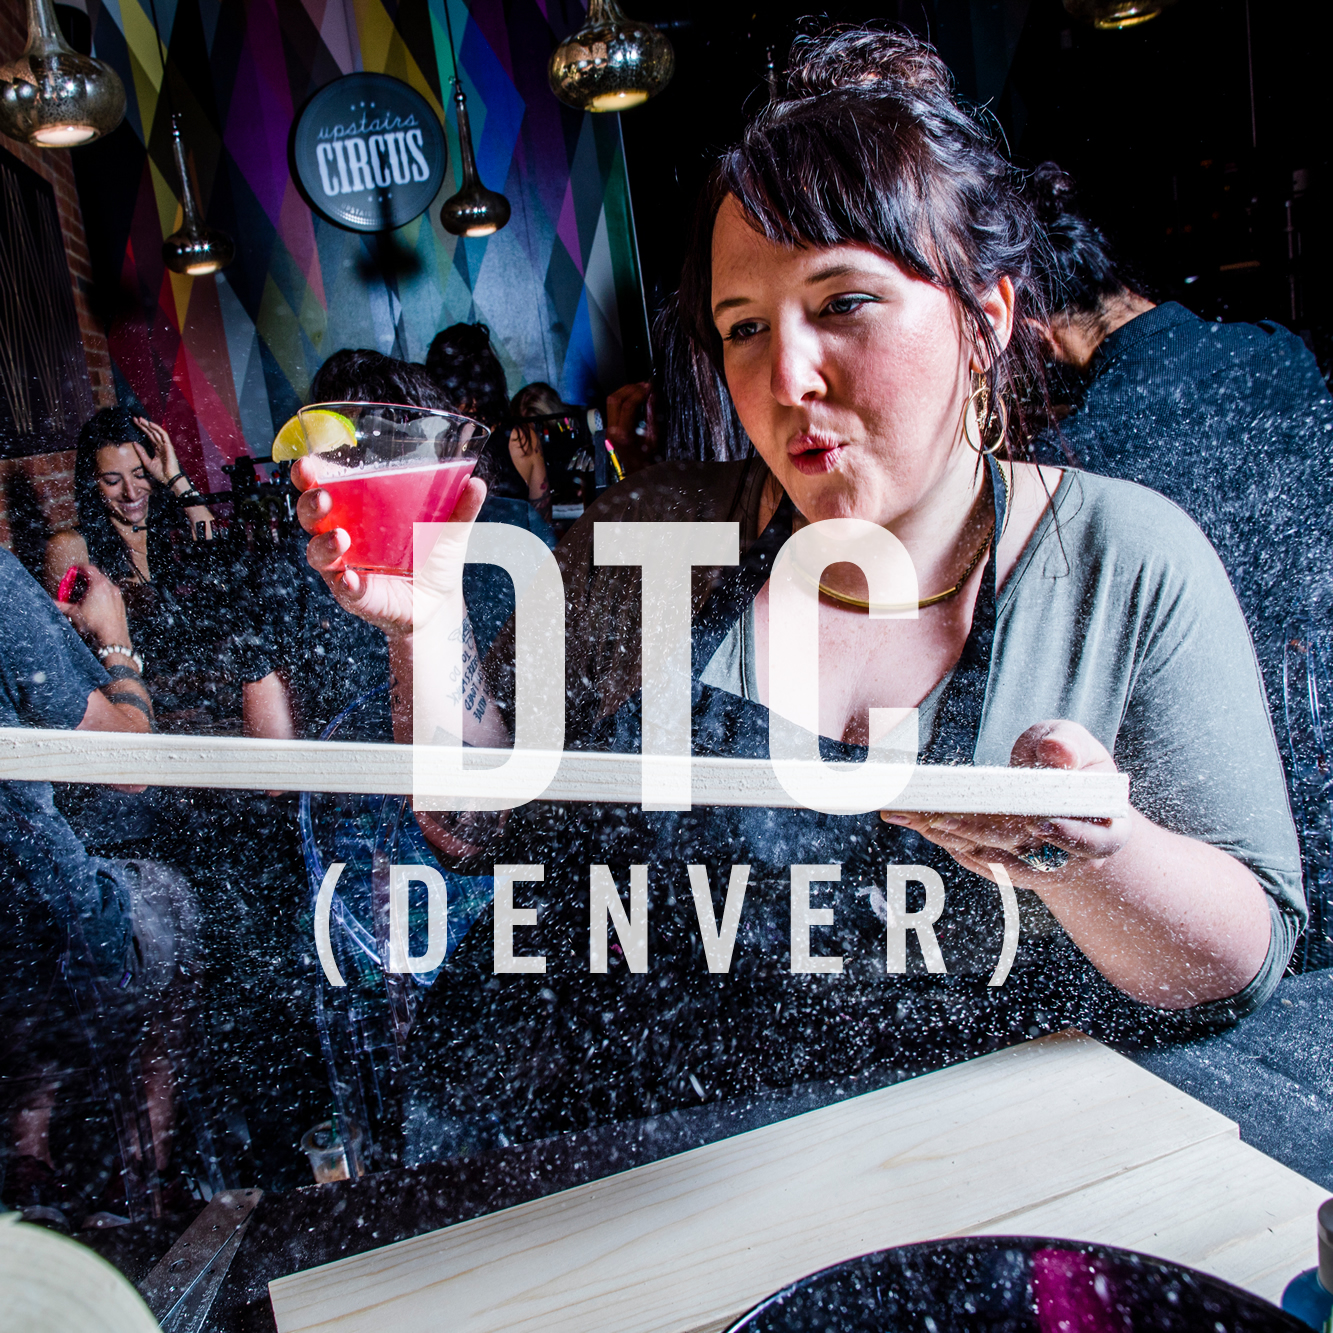 Make DIY Craft Projects and Enjoy Cocktails at Upstairs Circus DTC South Denver - Where DIY Workshop meets Bar